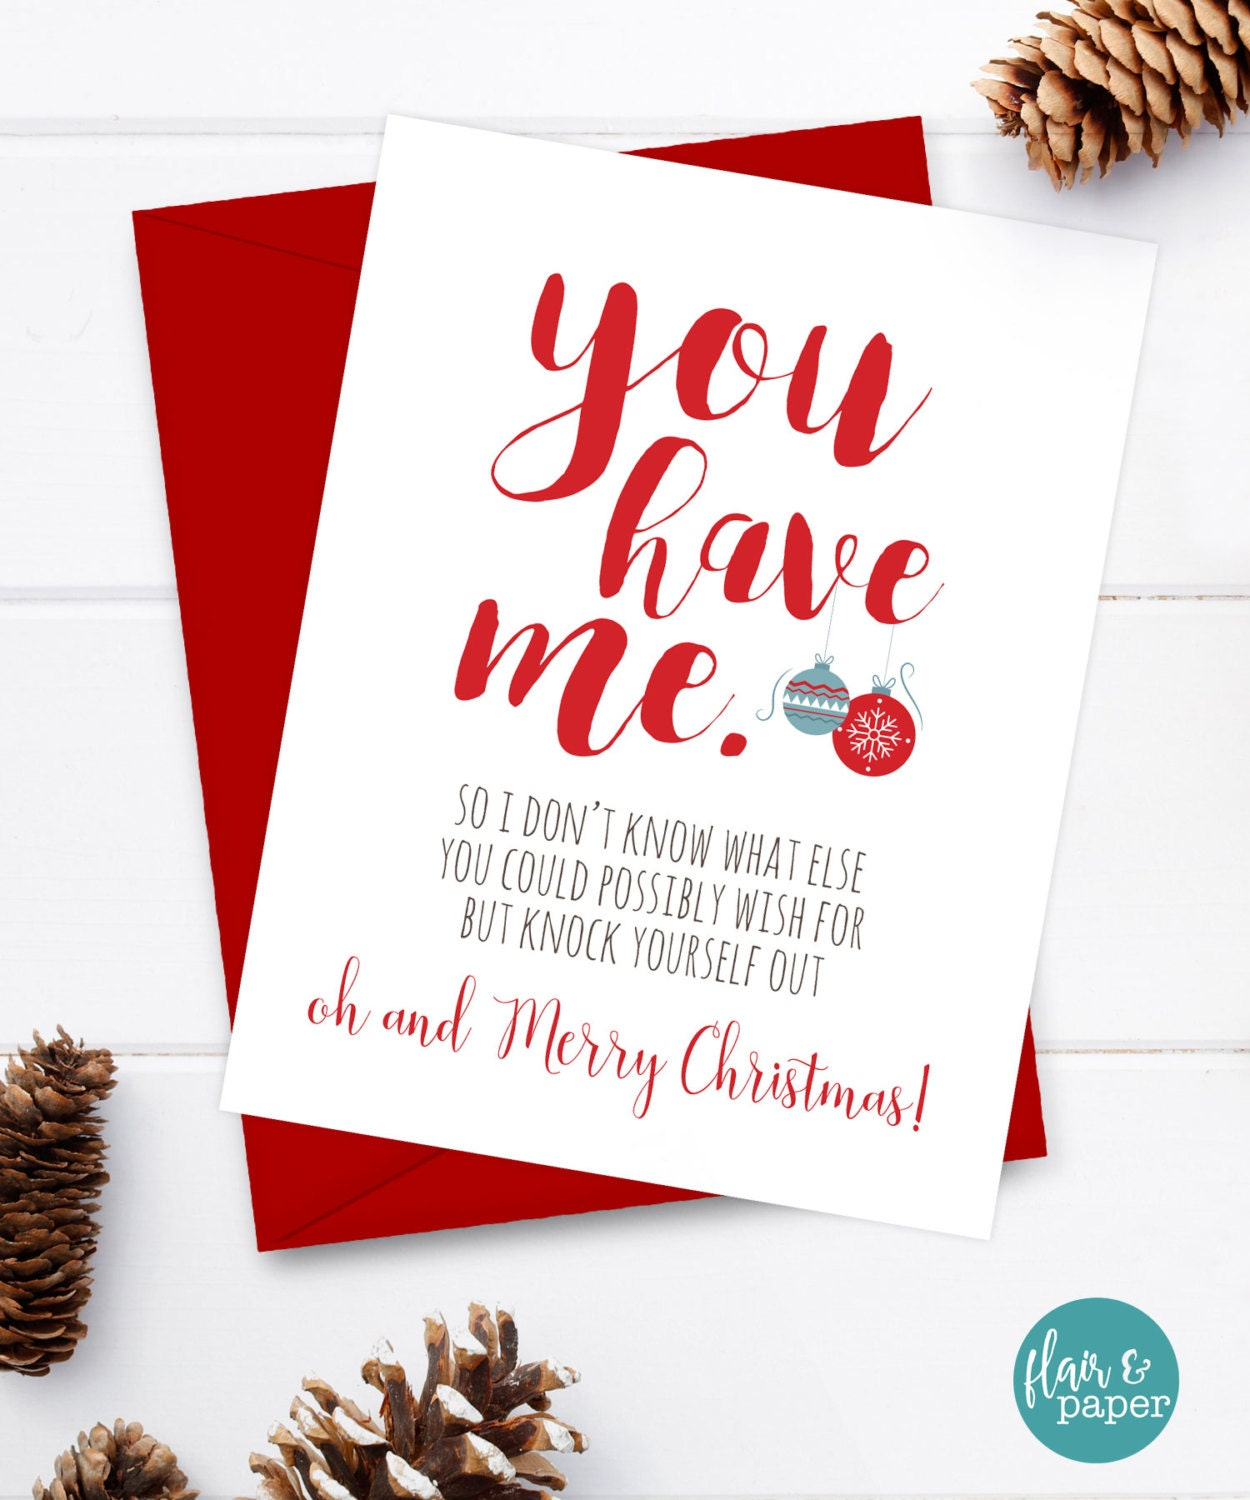 Christmas Cards For Military